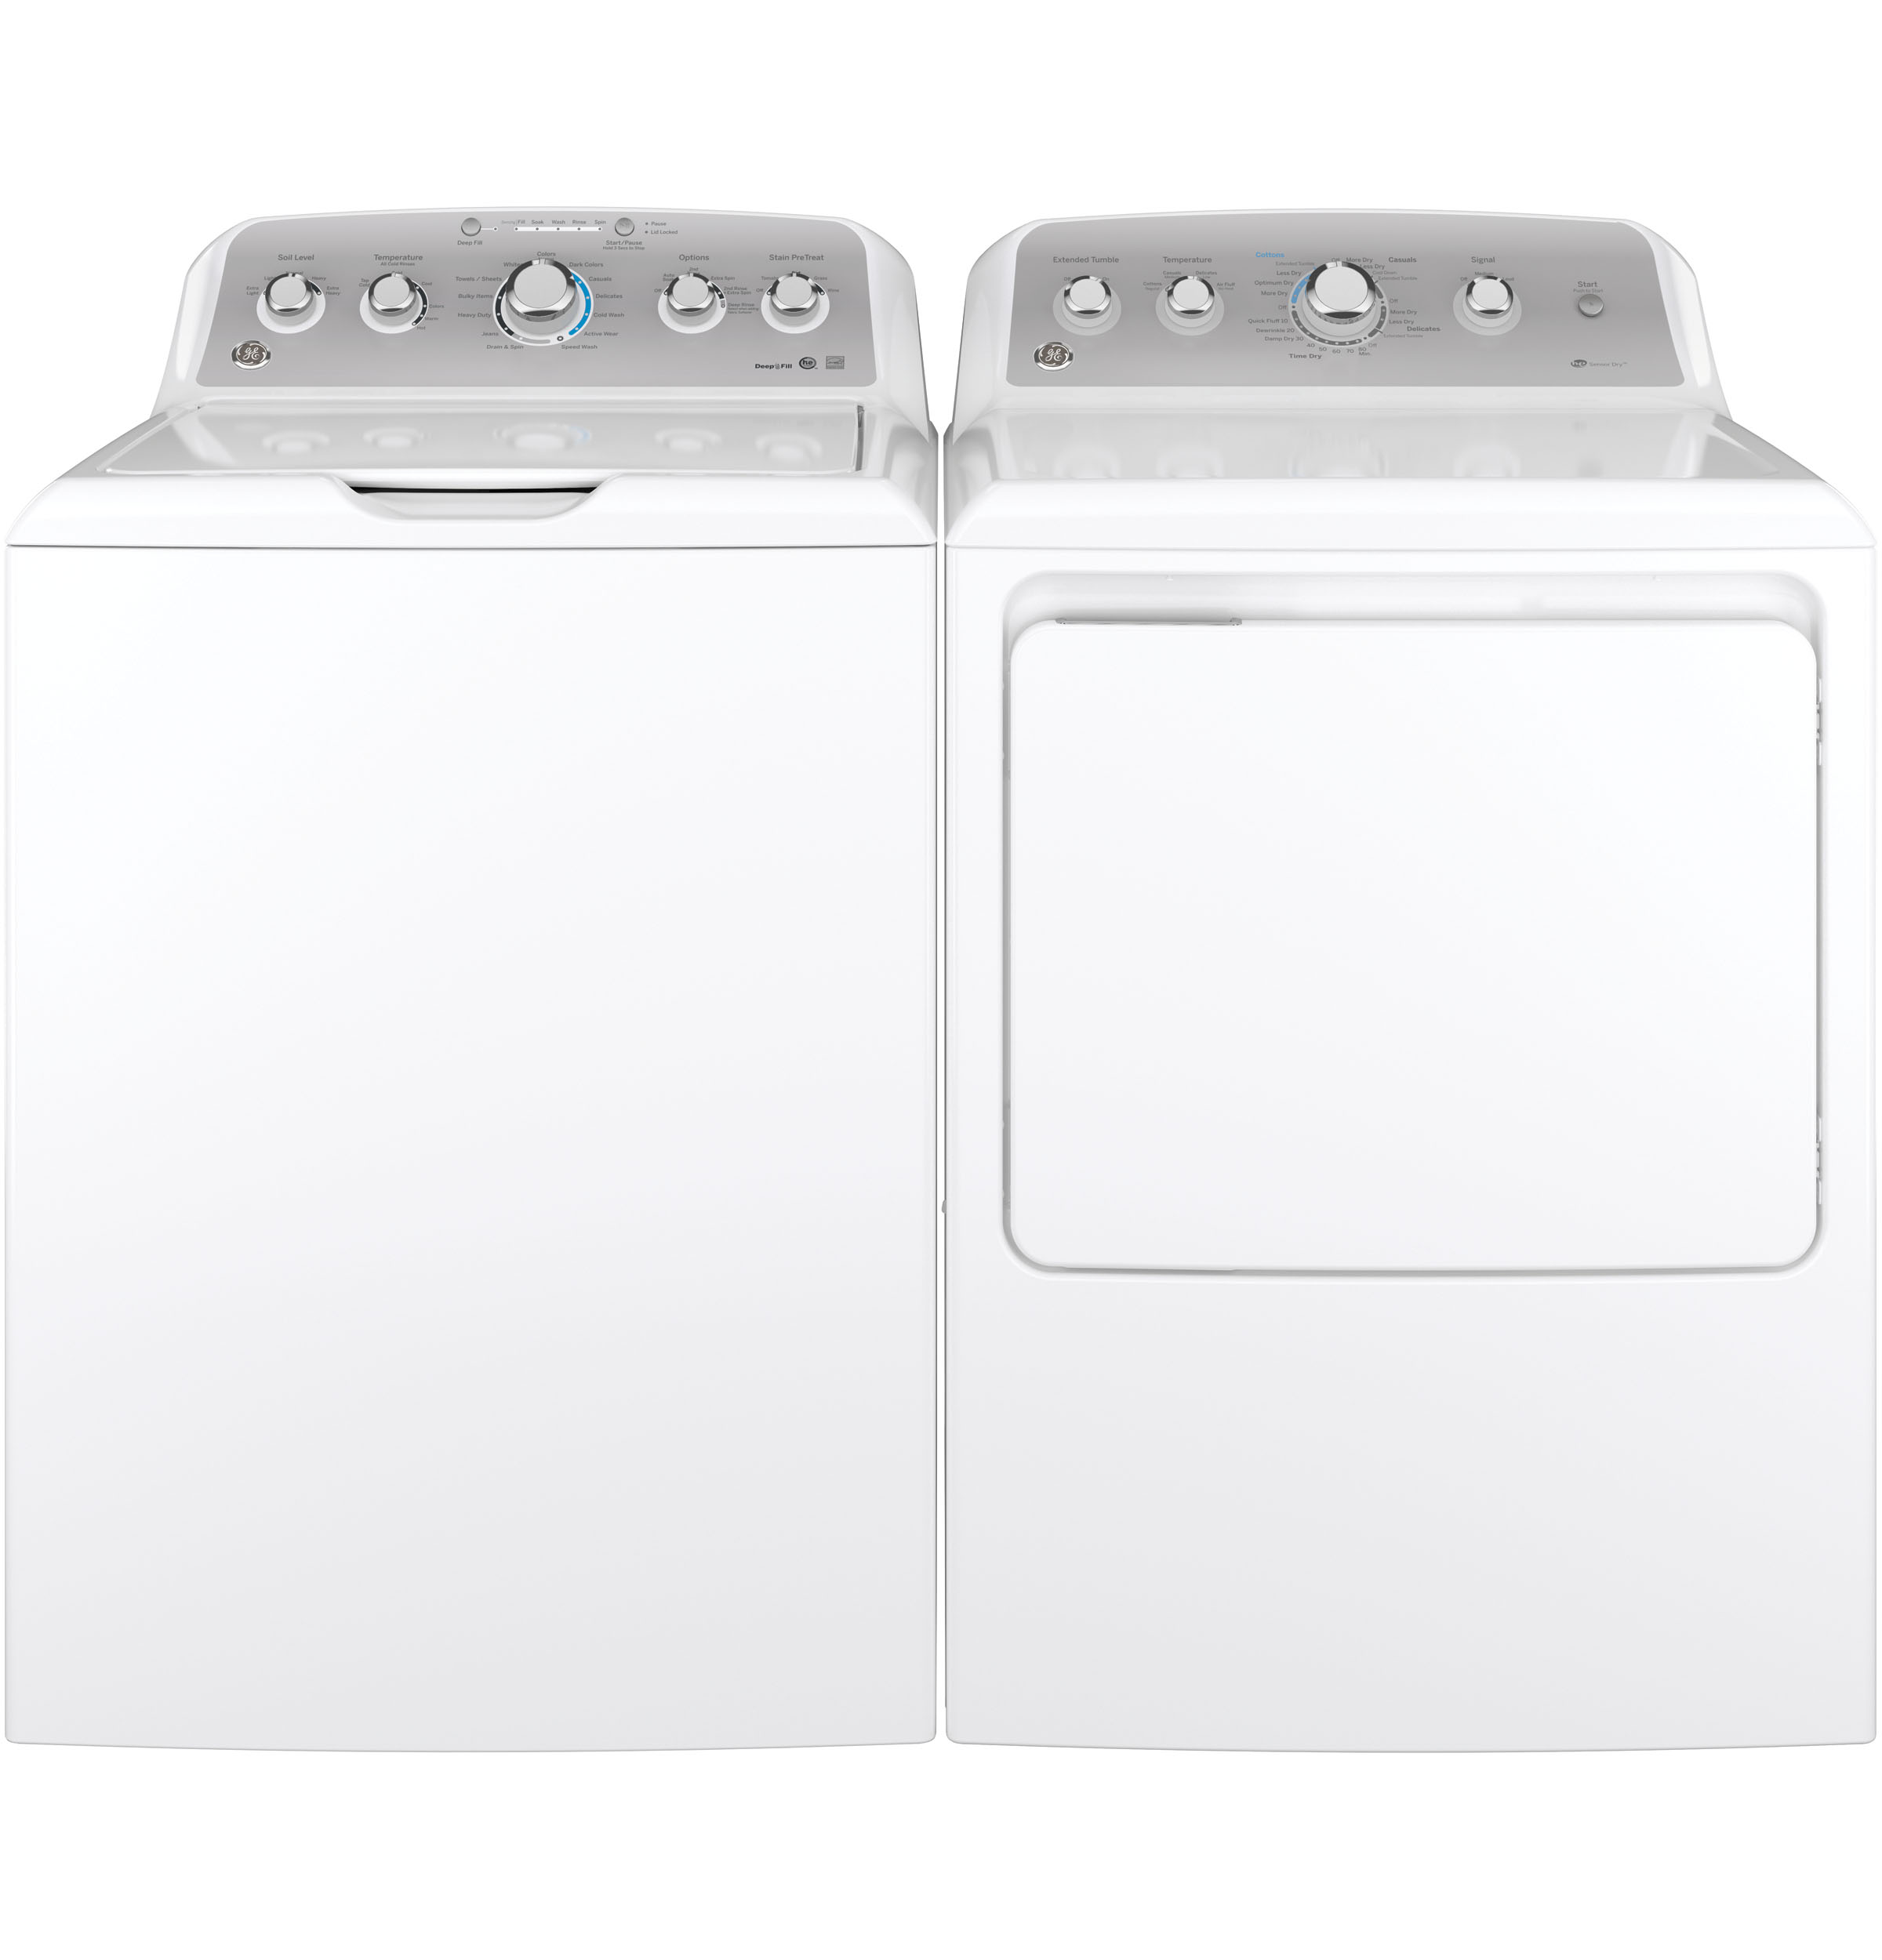 Ge Appliances Washing Machine Ge Appliances Offers Big Time Savings Introducing Industrys